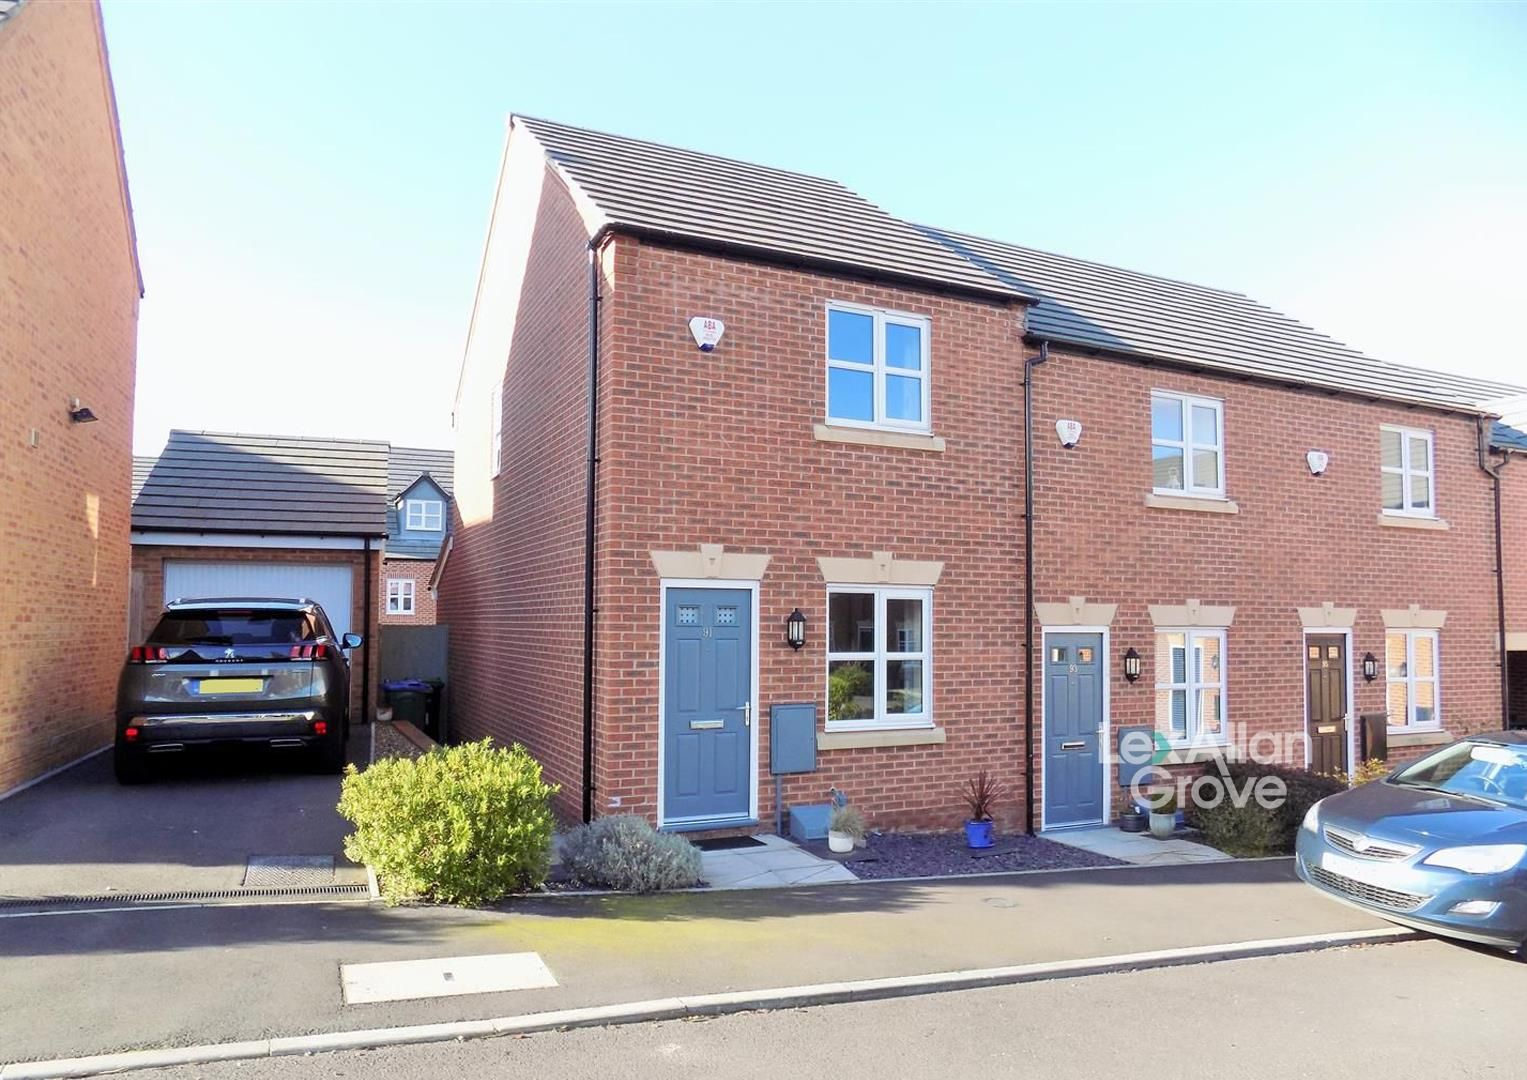 2 bed end-of-terrace for sale, B69